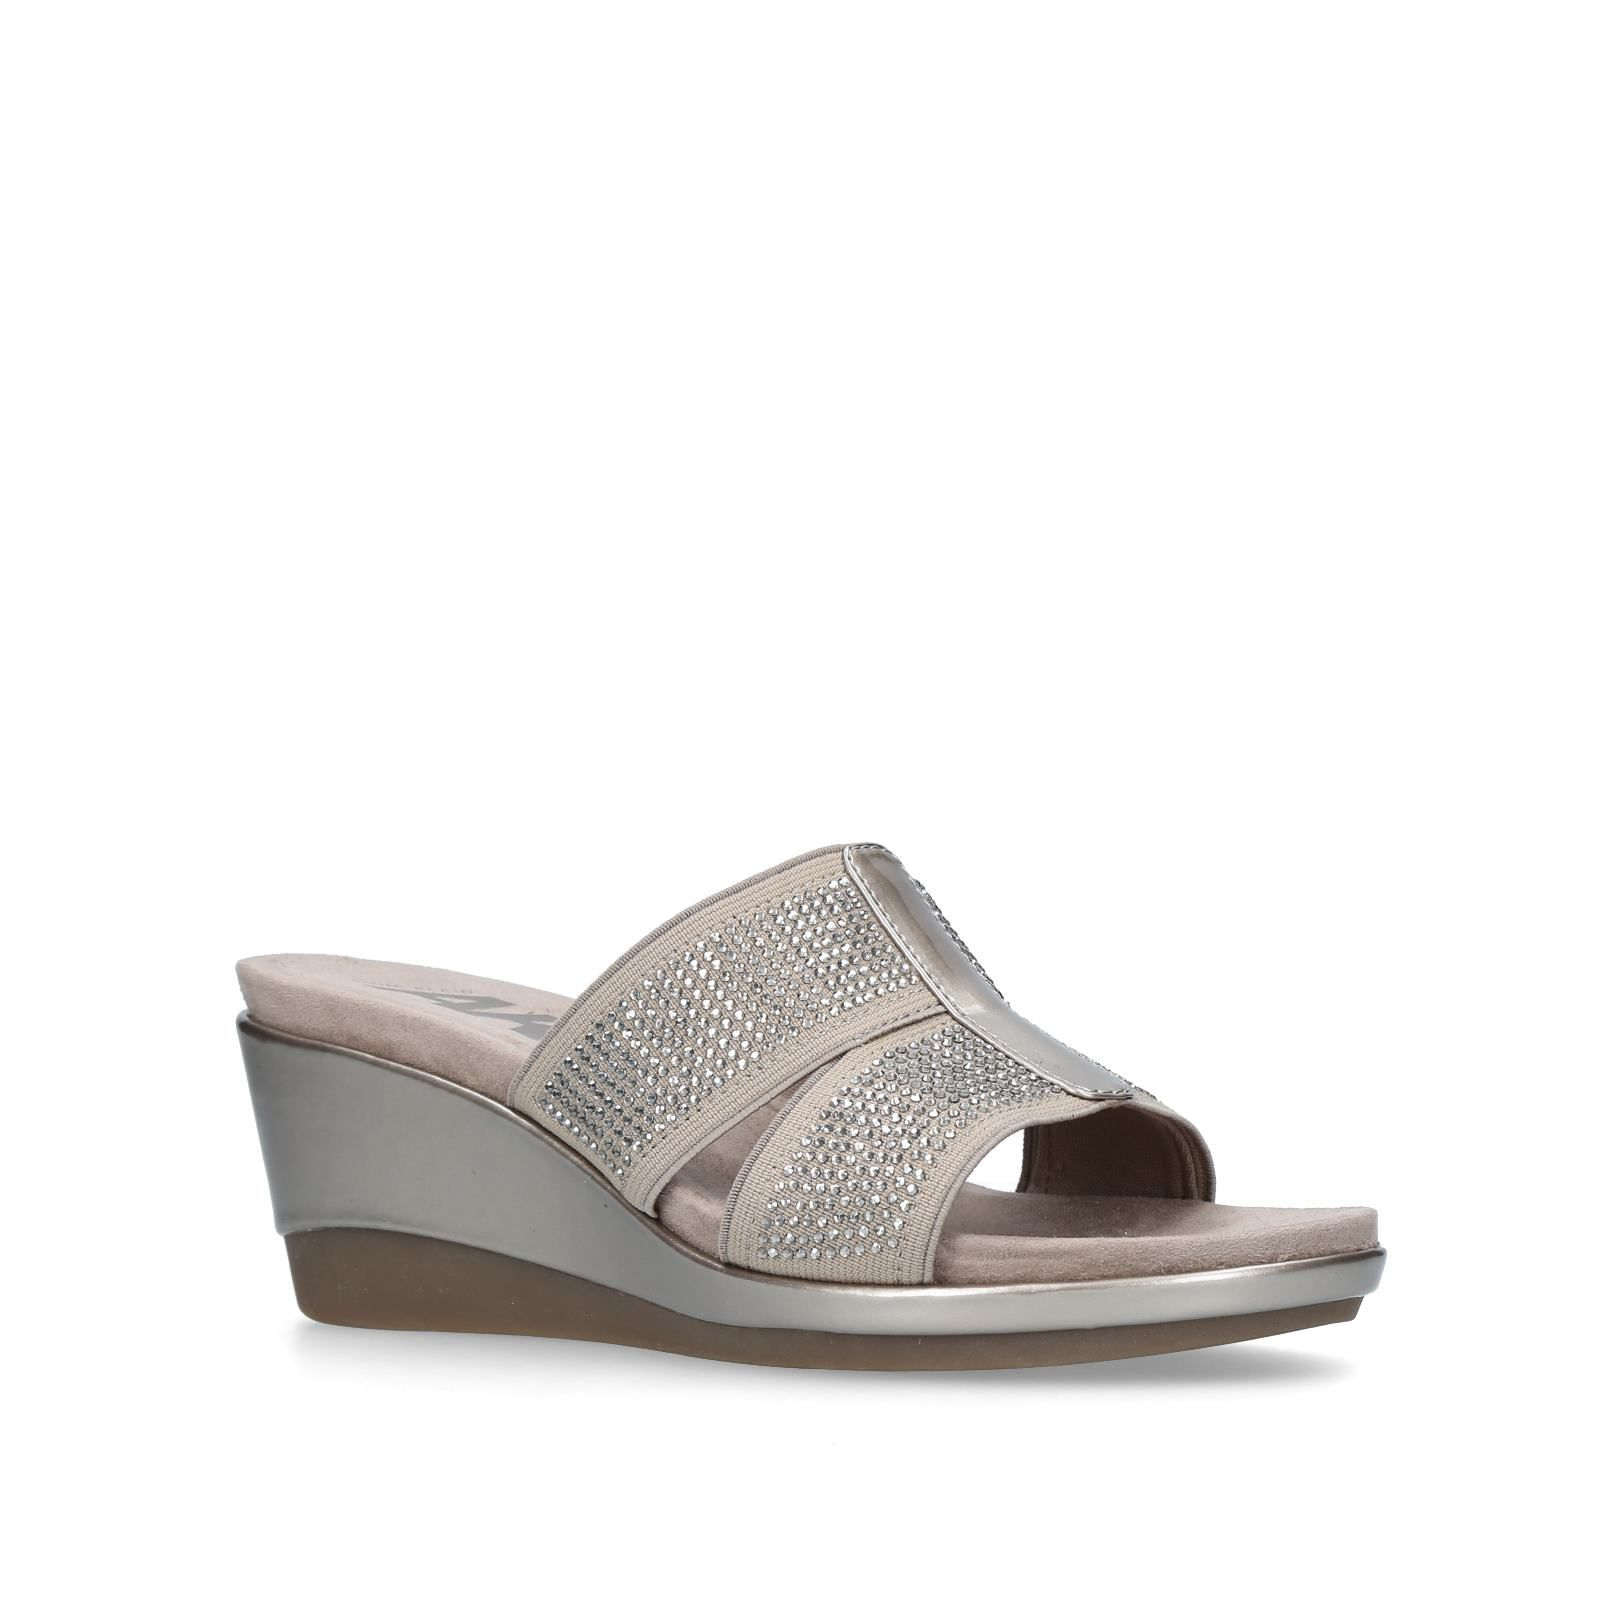 Anne Klein Pallace Mules, Brown